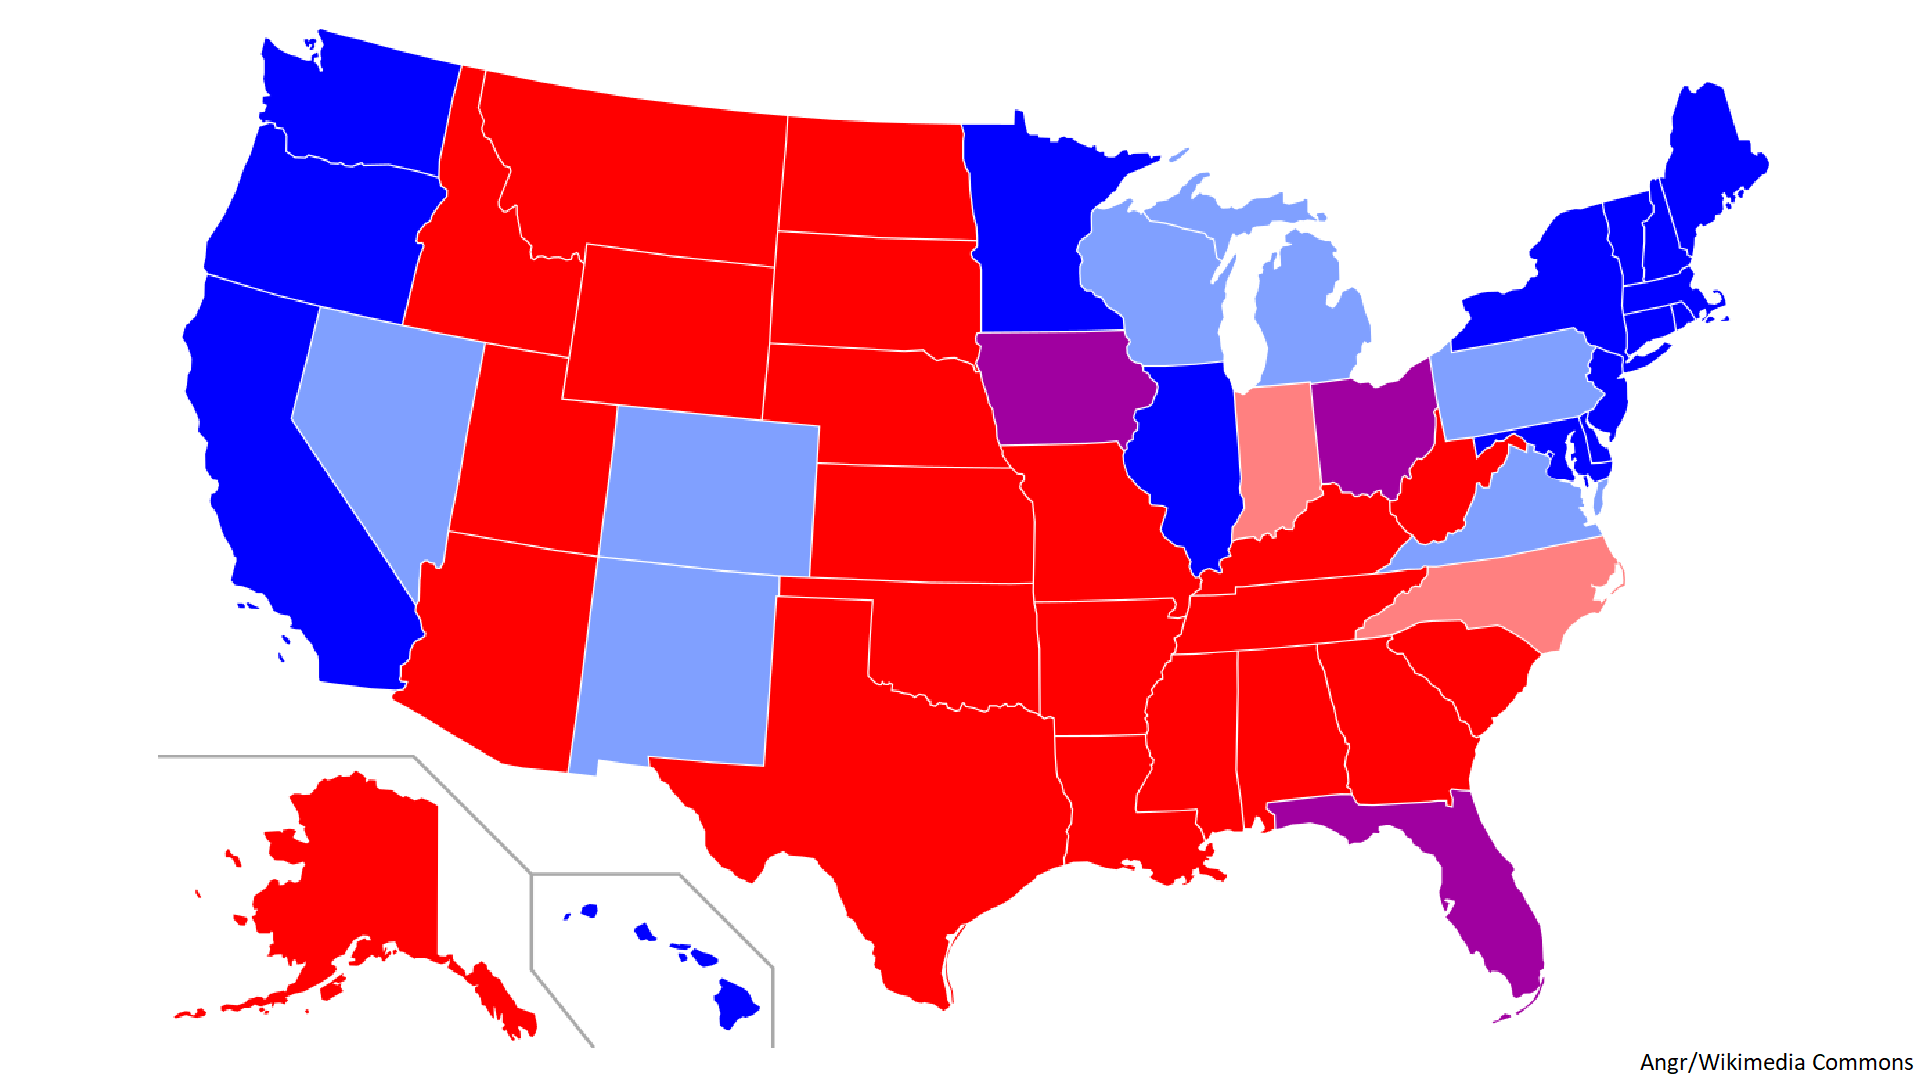 state political affiliation map.png